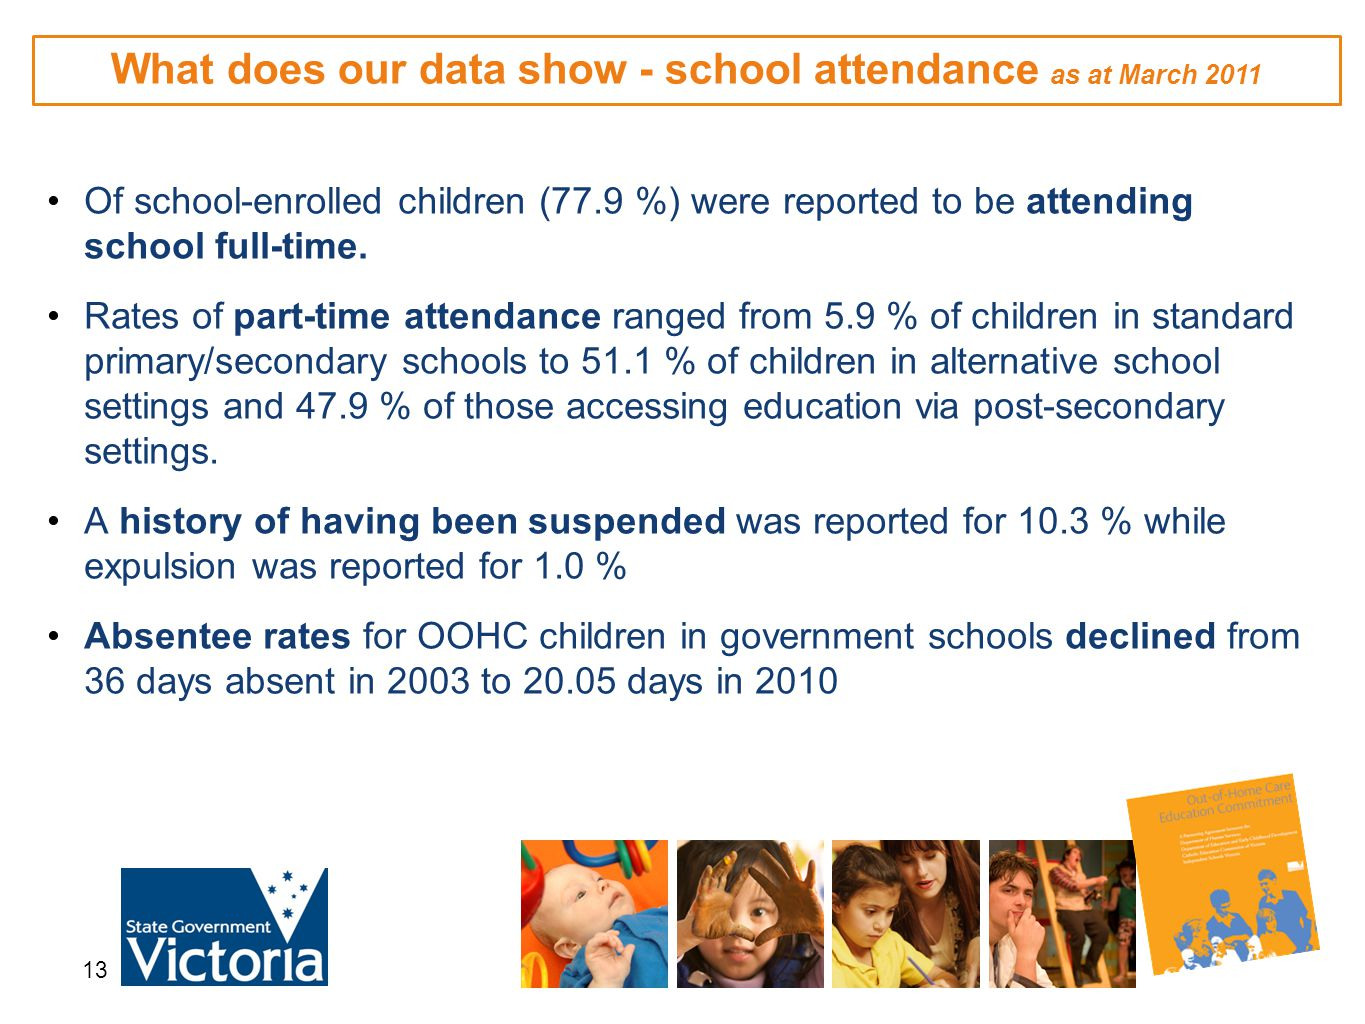 Of school-enrolled children (77.9 %) were reported to be attending school full-time.